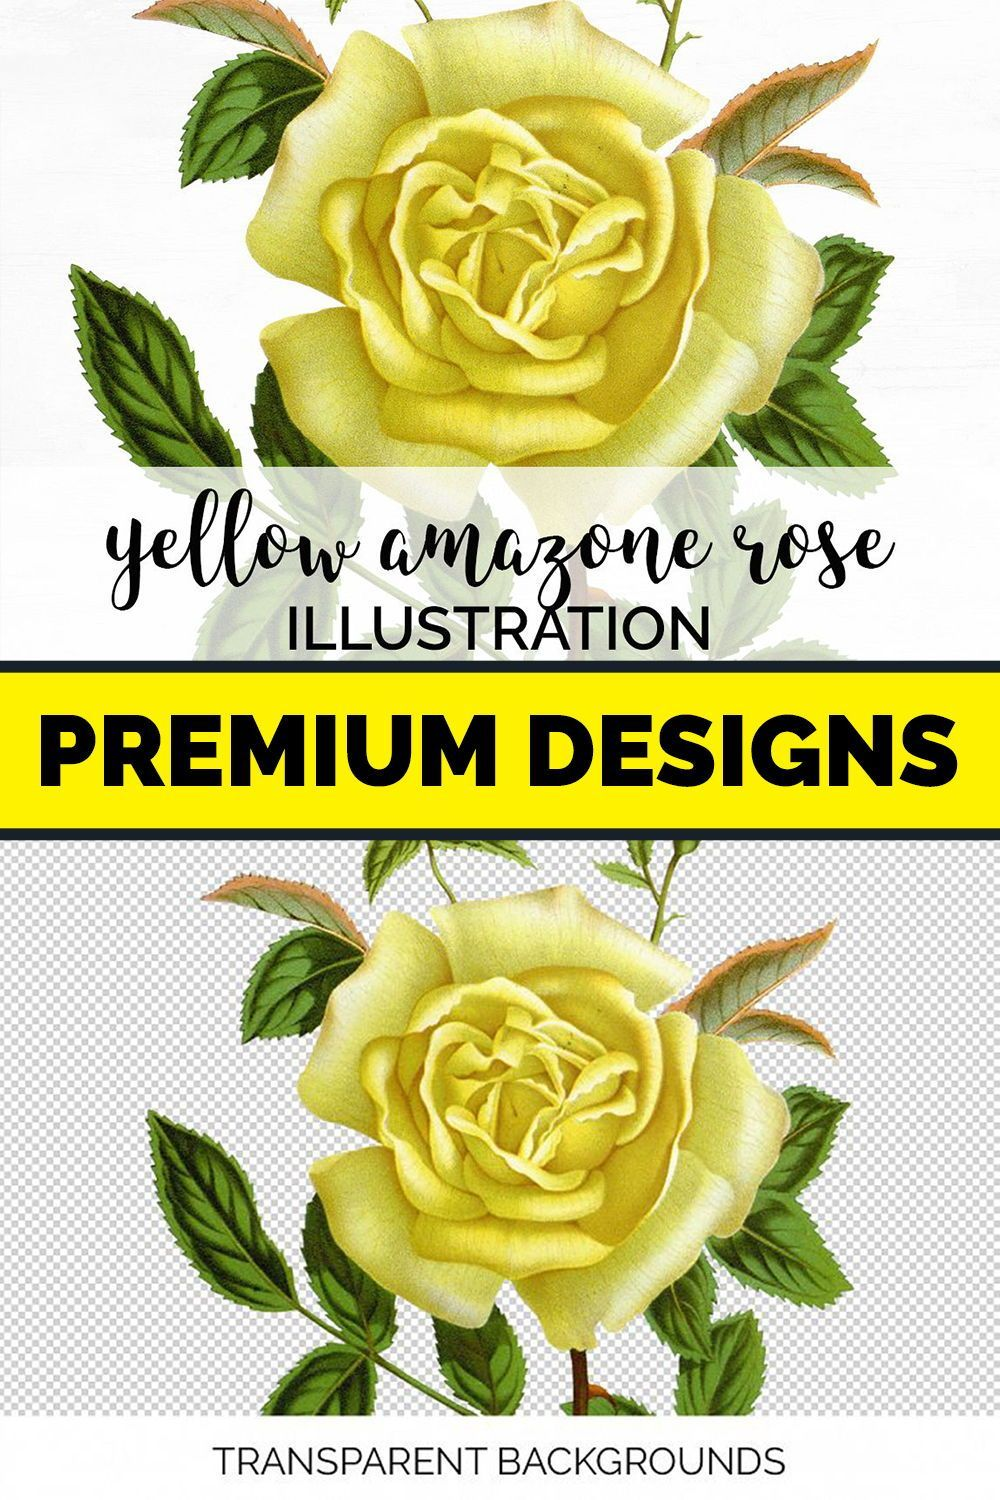 Floral print carnations in yellow carnations illustration printable home decor or wall art